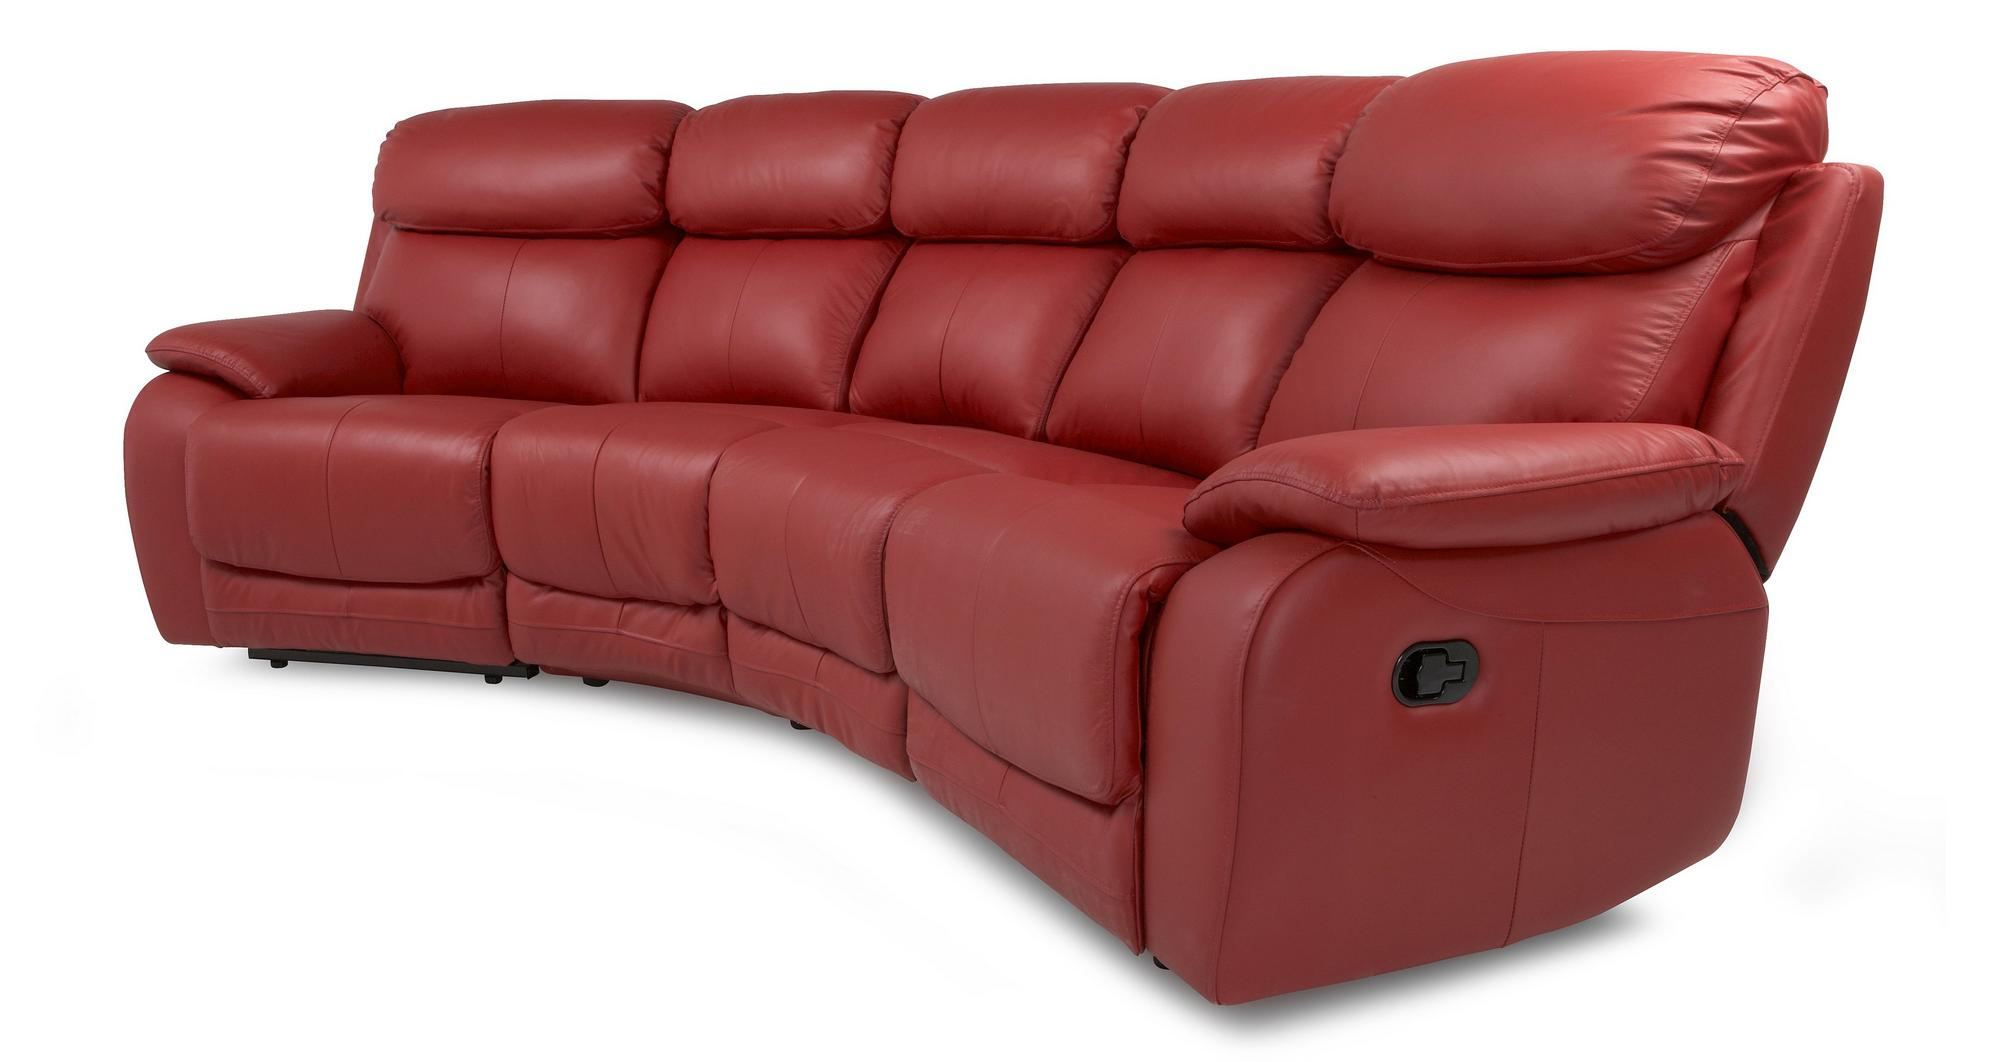 Dfs Daytona Red 100 Leather Recliner Set Inc 4 Seater Curved Sofa Armchair Ebay